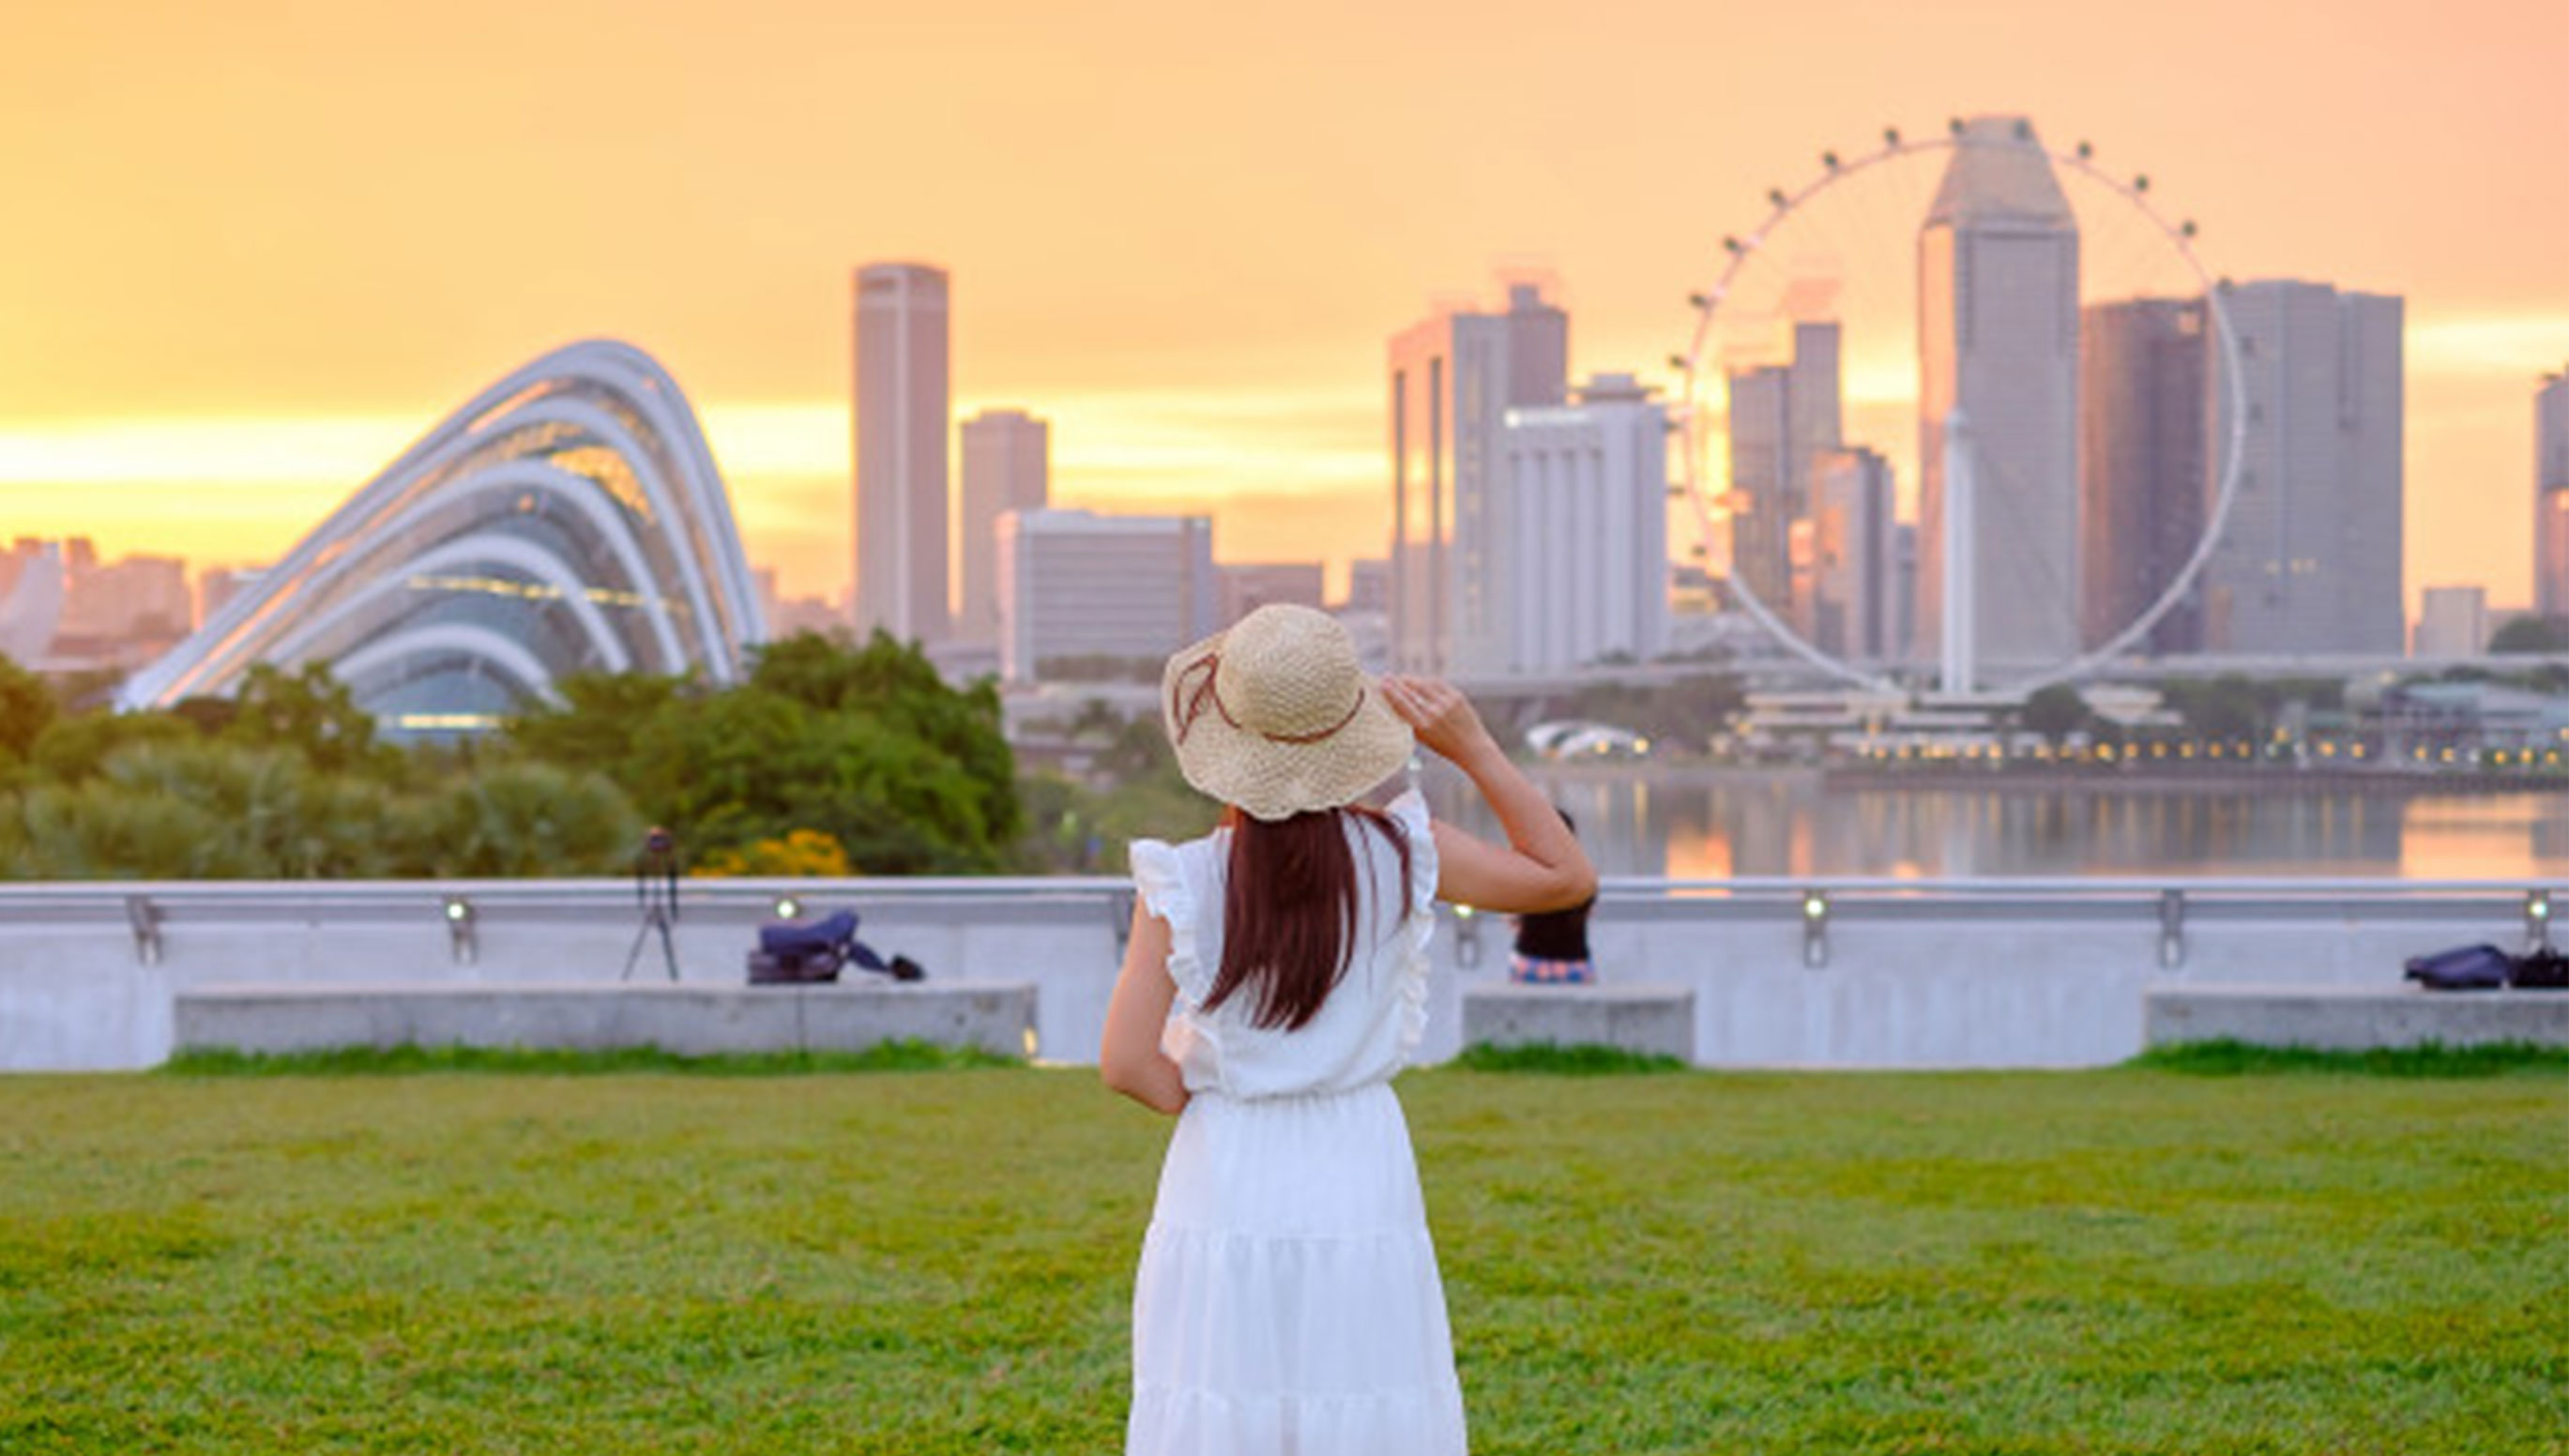 HTop 10 things to do in Singapore during the summer holidays